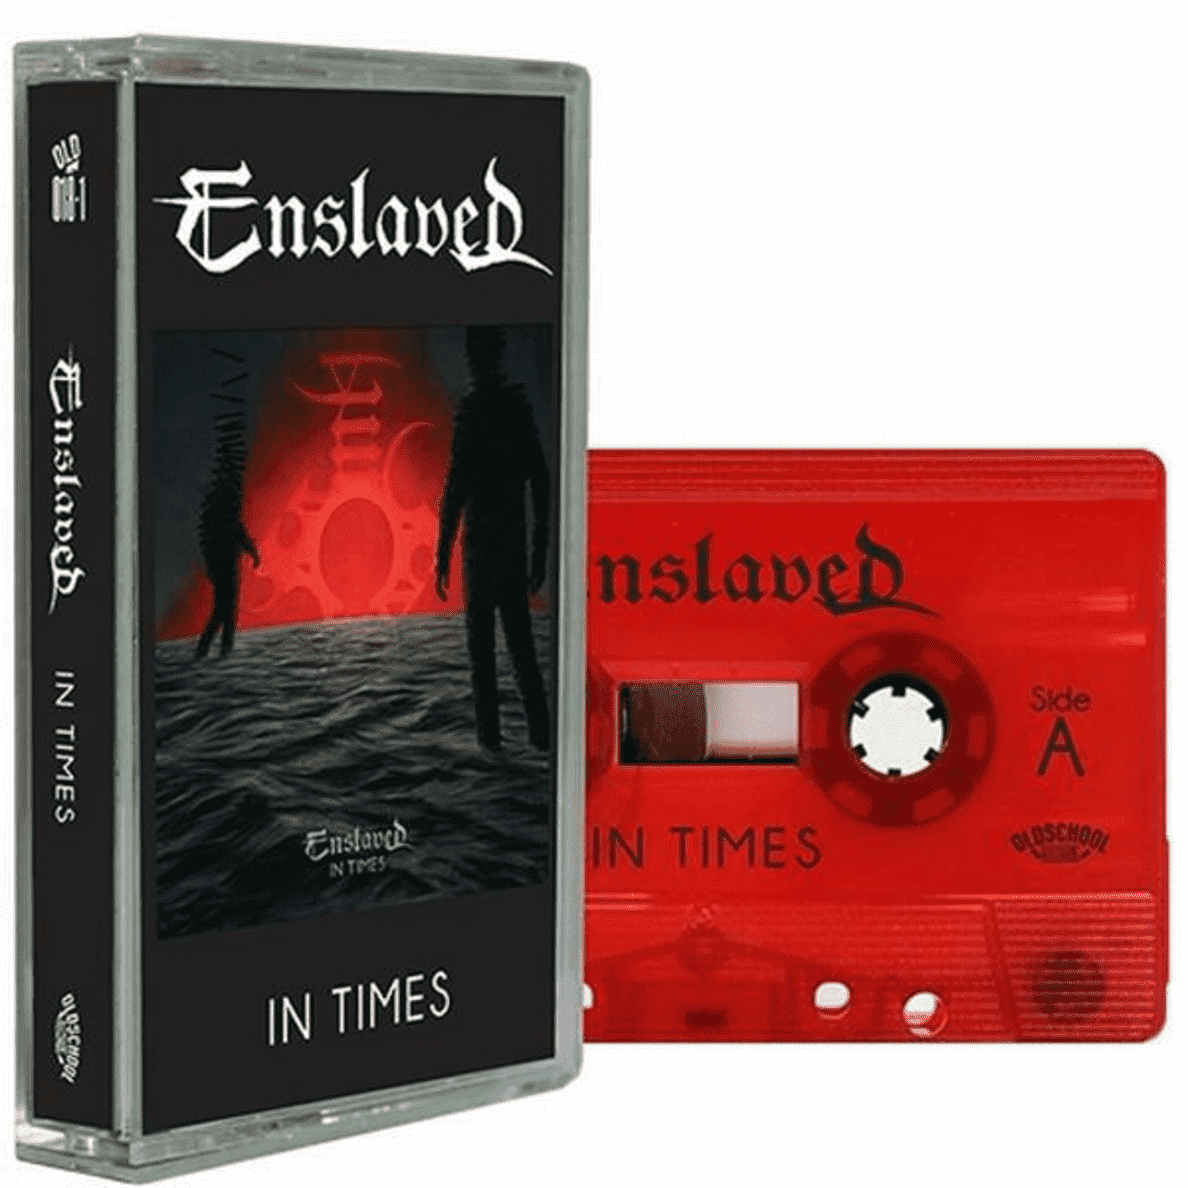 In Times (Red Chrome) Enslaved auf MC (analog)